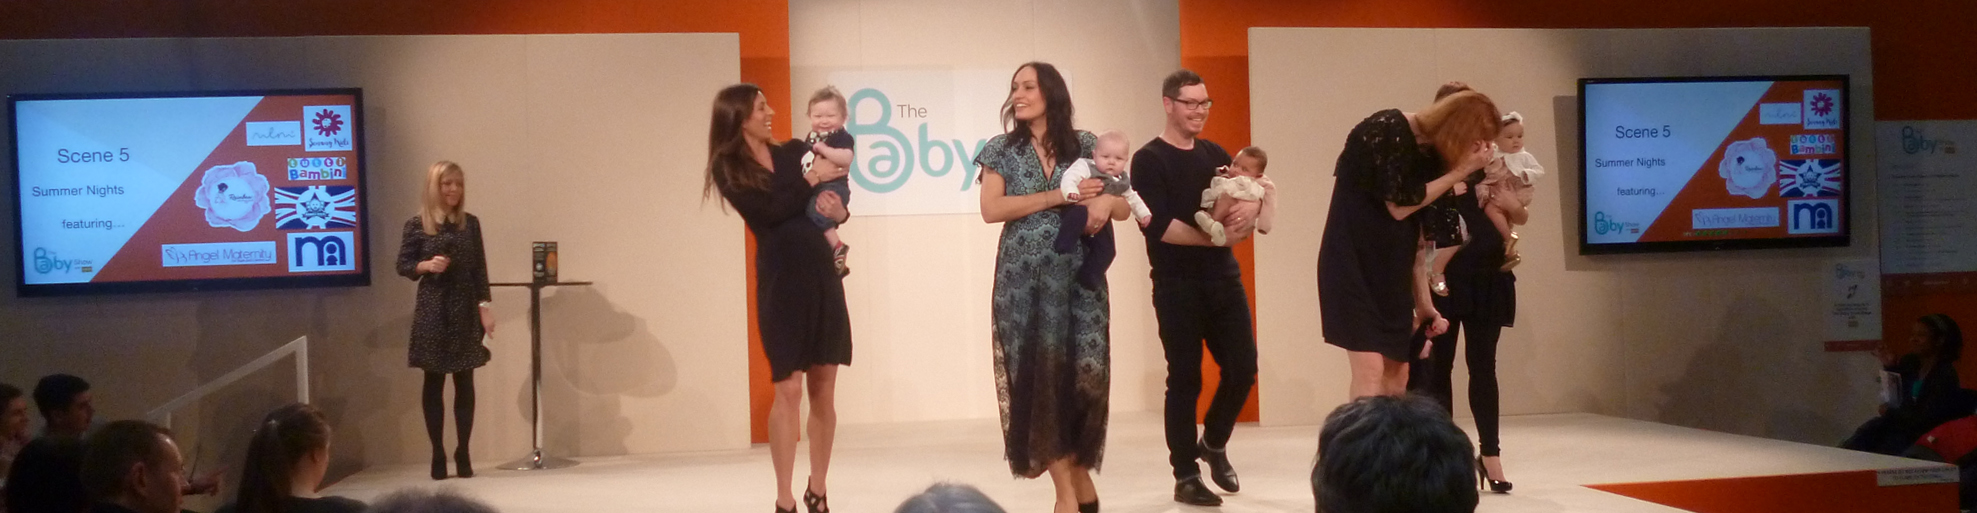 The Baby Show